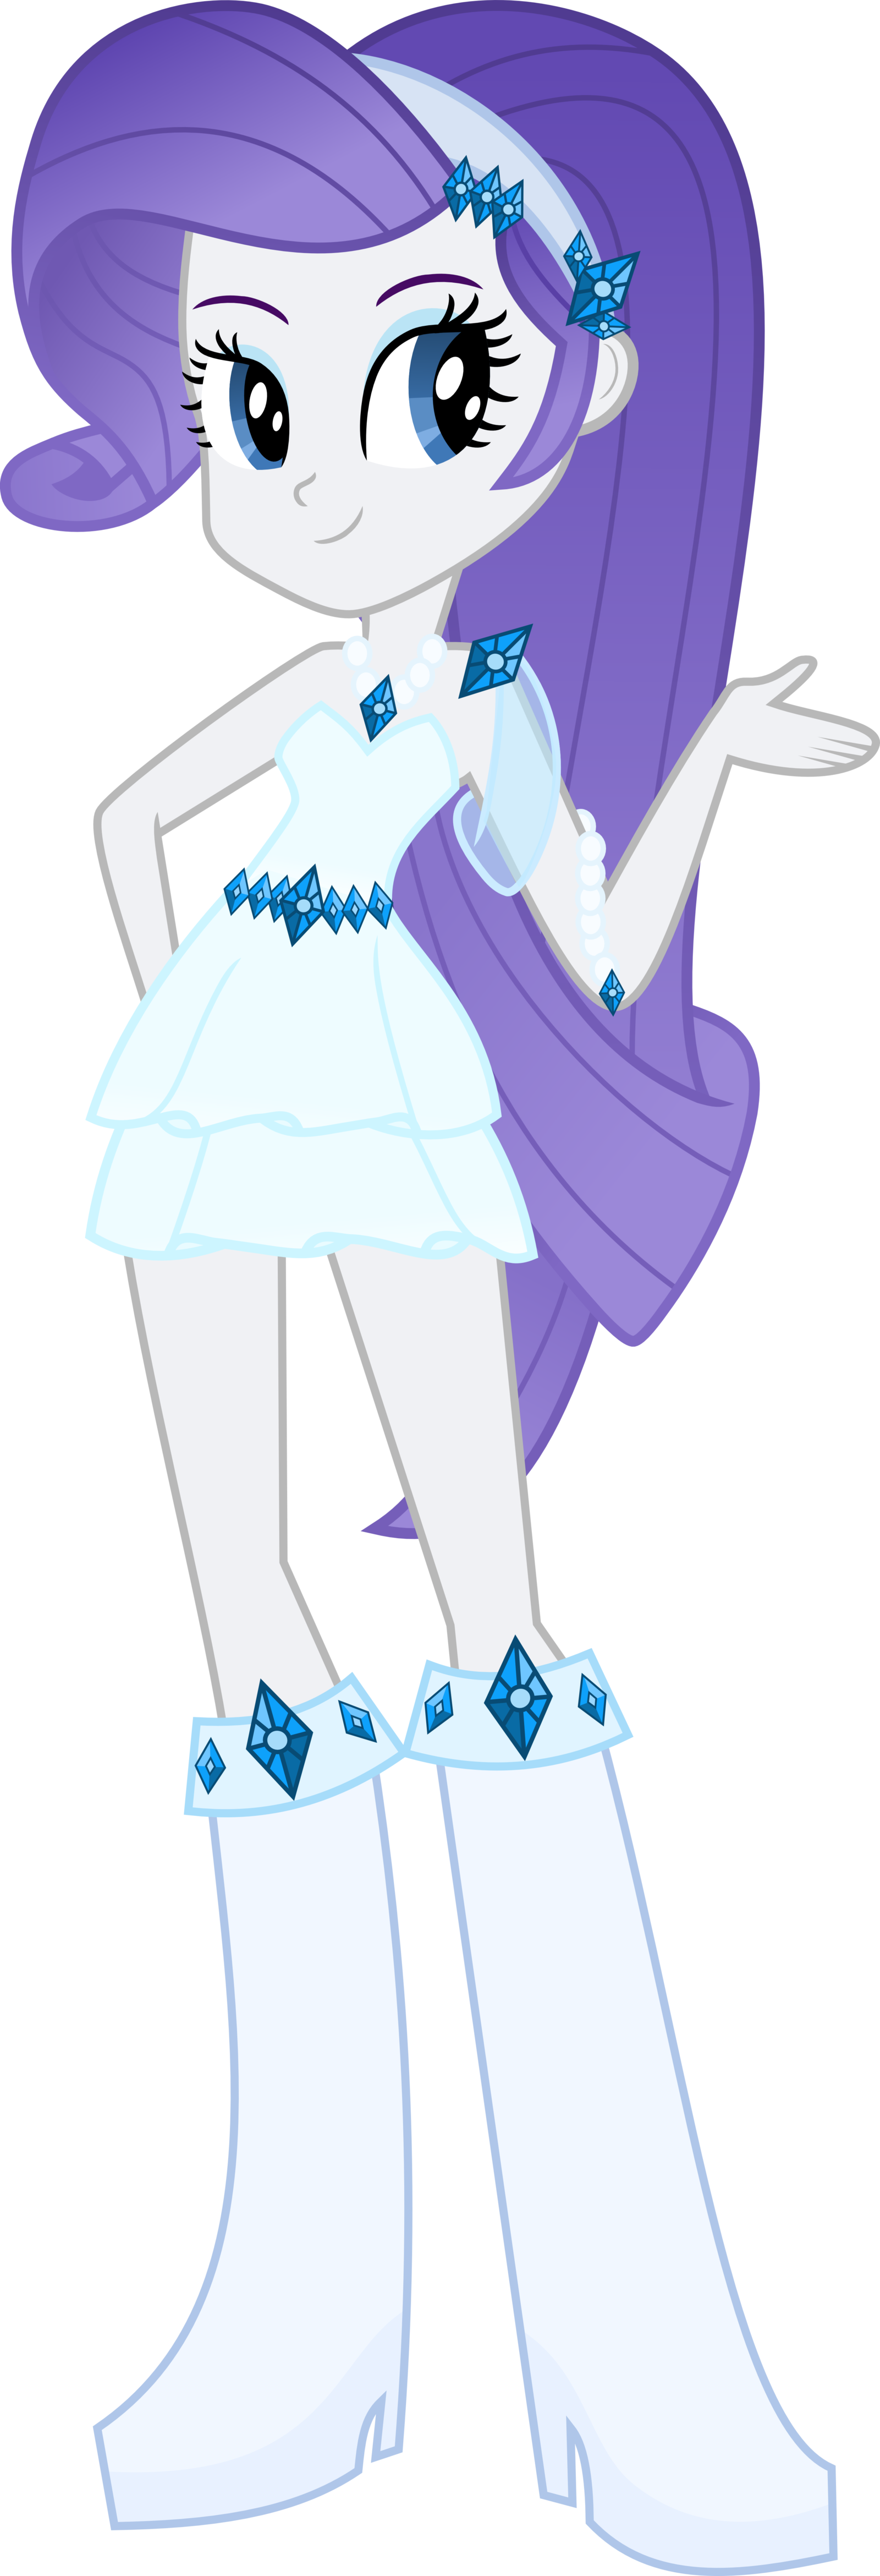 Rarity Equestria Girls By Aqua On Deviantart Emily Pinterest